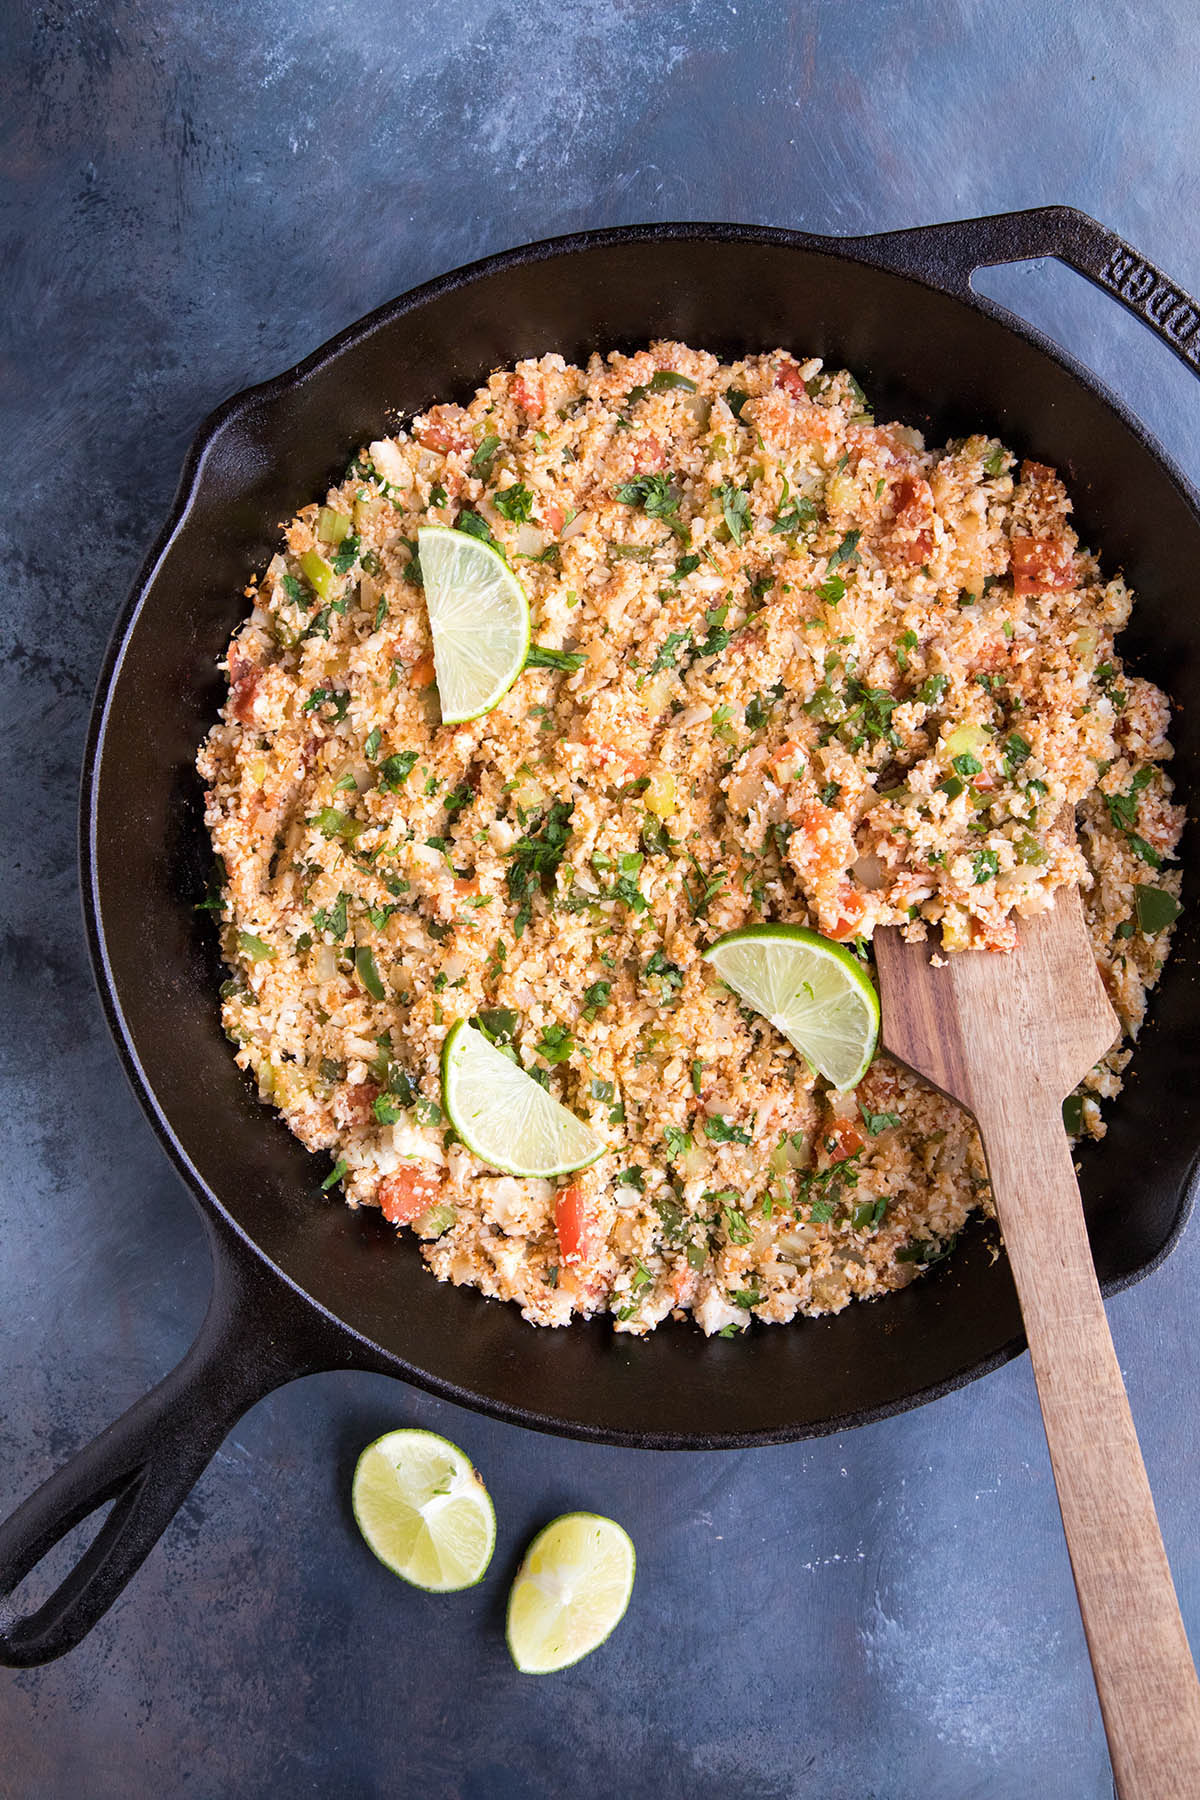 Cajun Cauliflower Rice in the pan. One of my new favorite recipes.